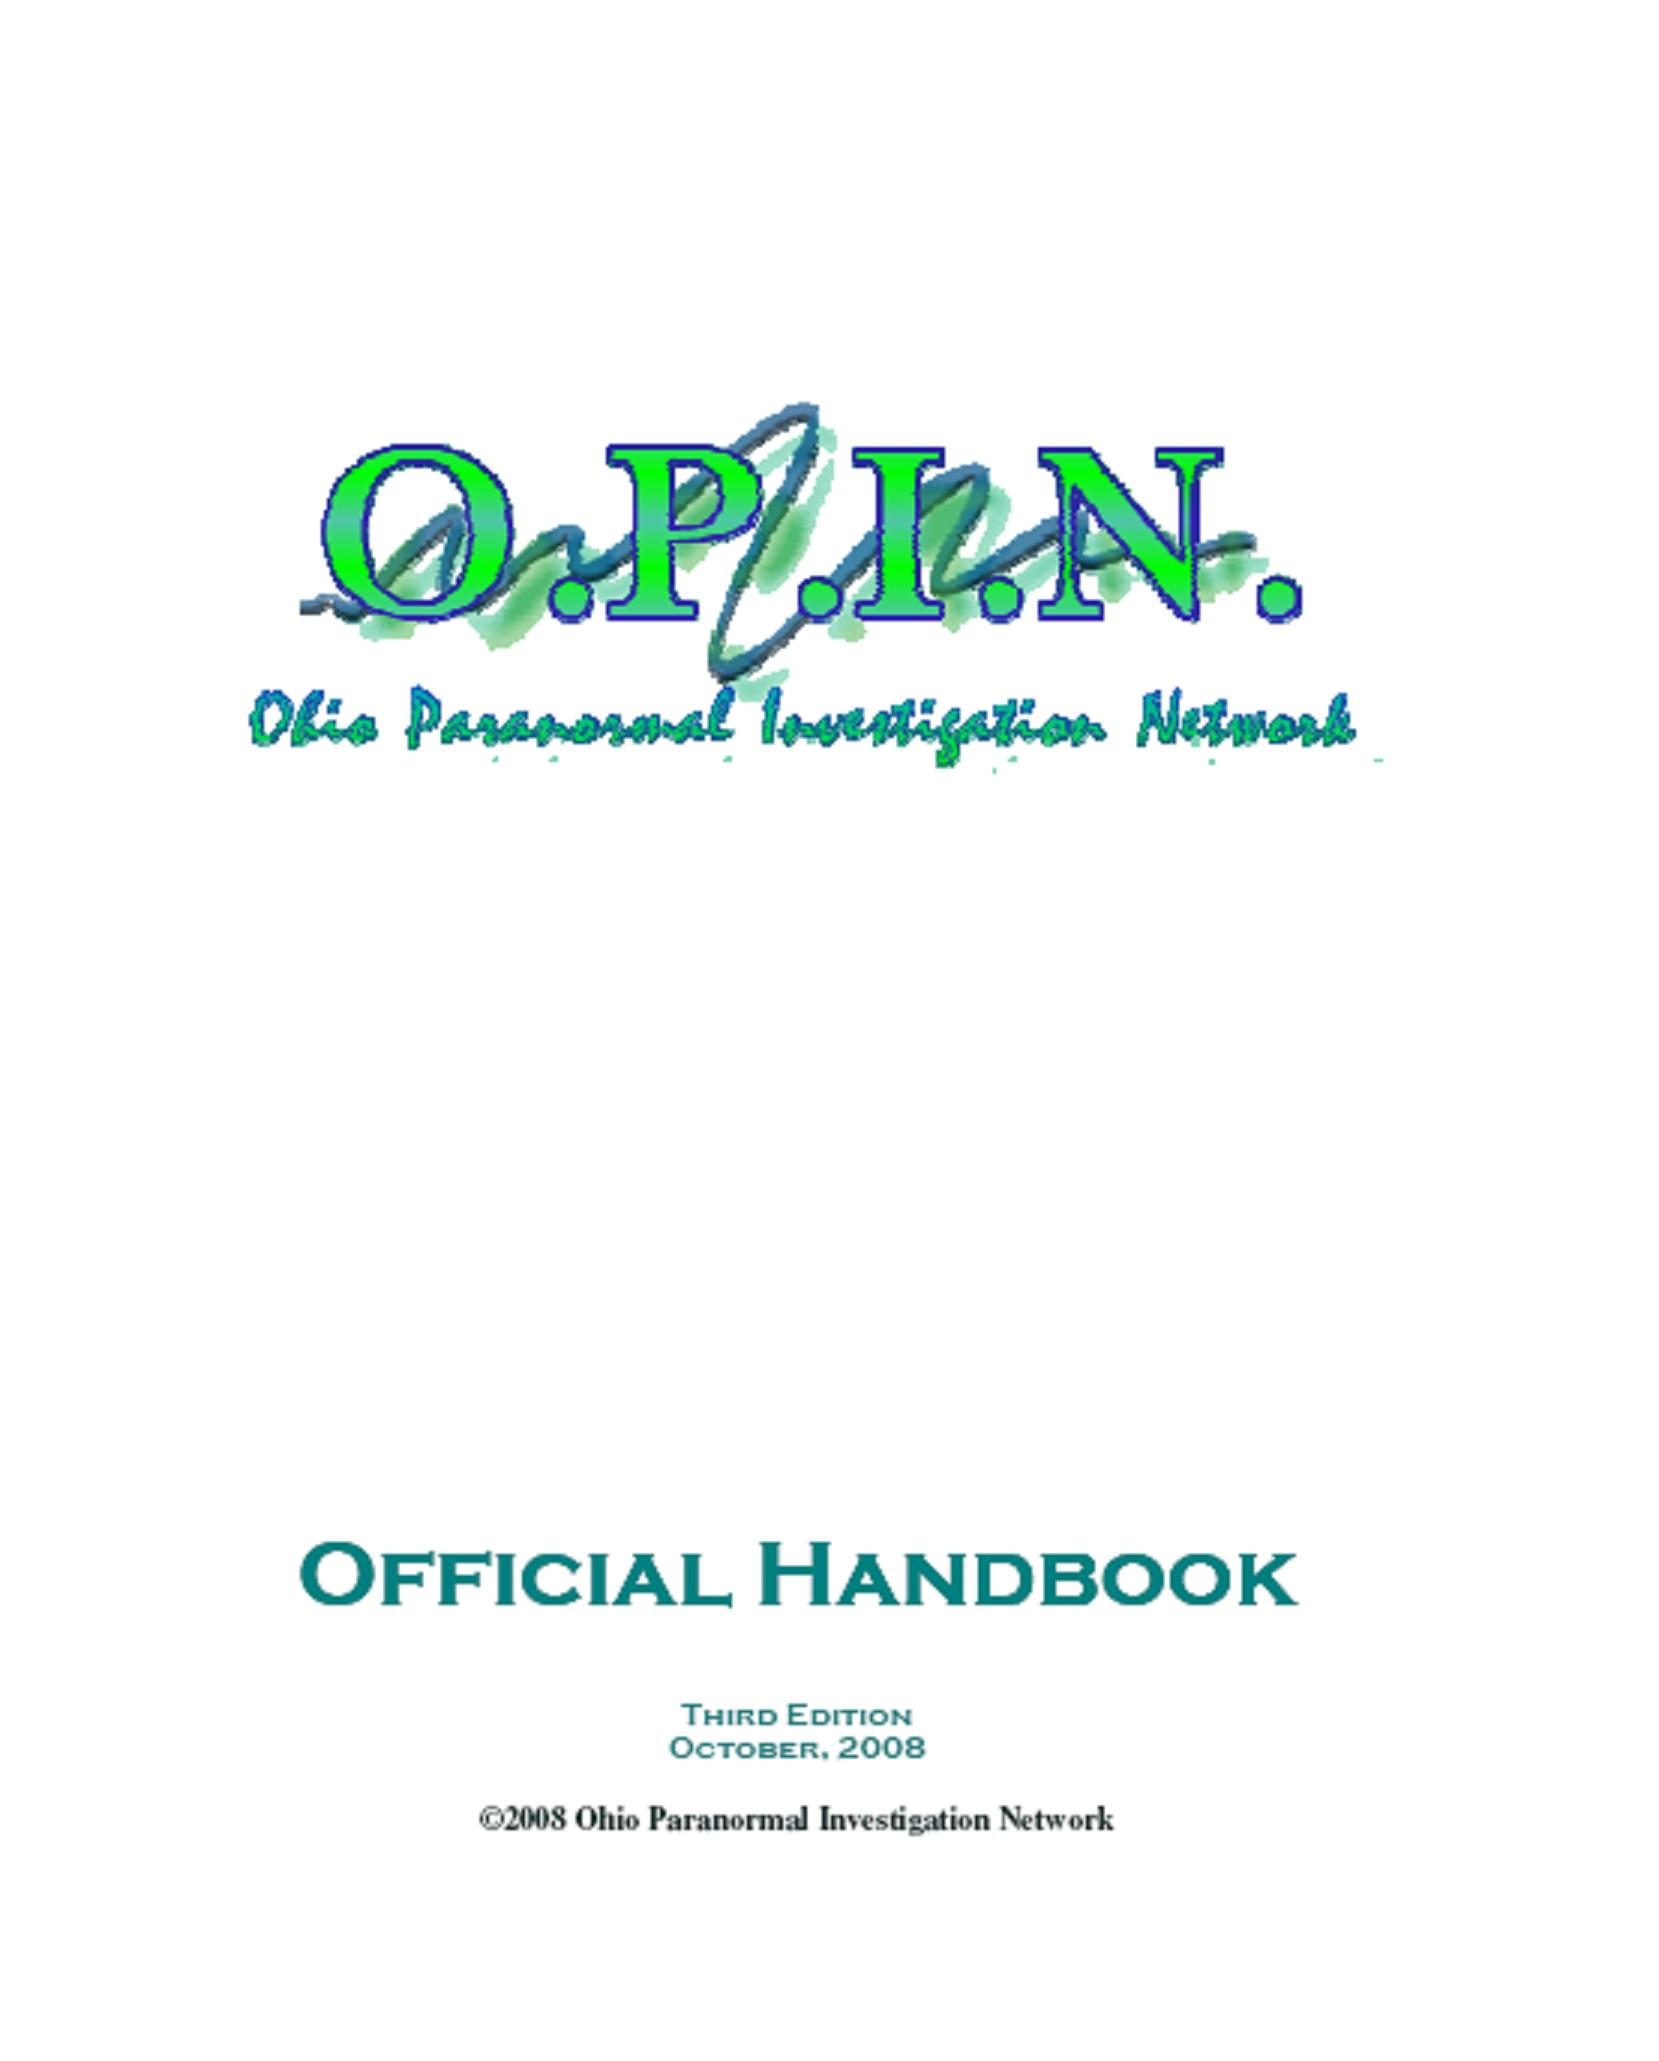 Ohio Paranormal Investigation Network Handbook